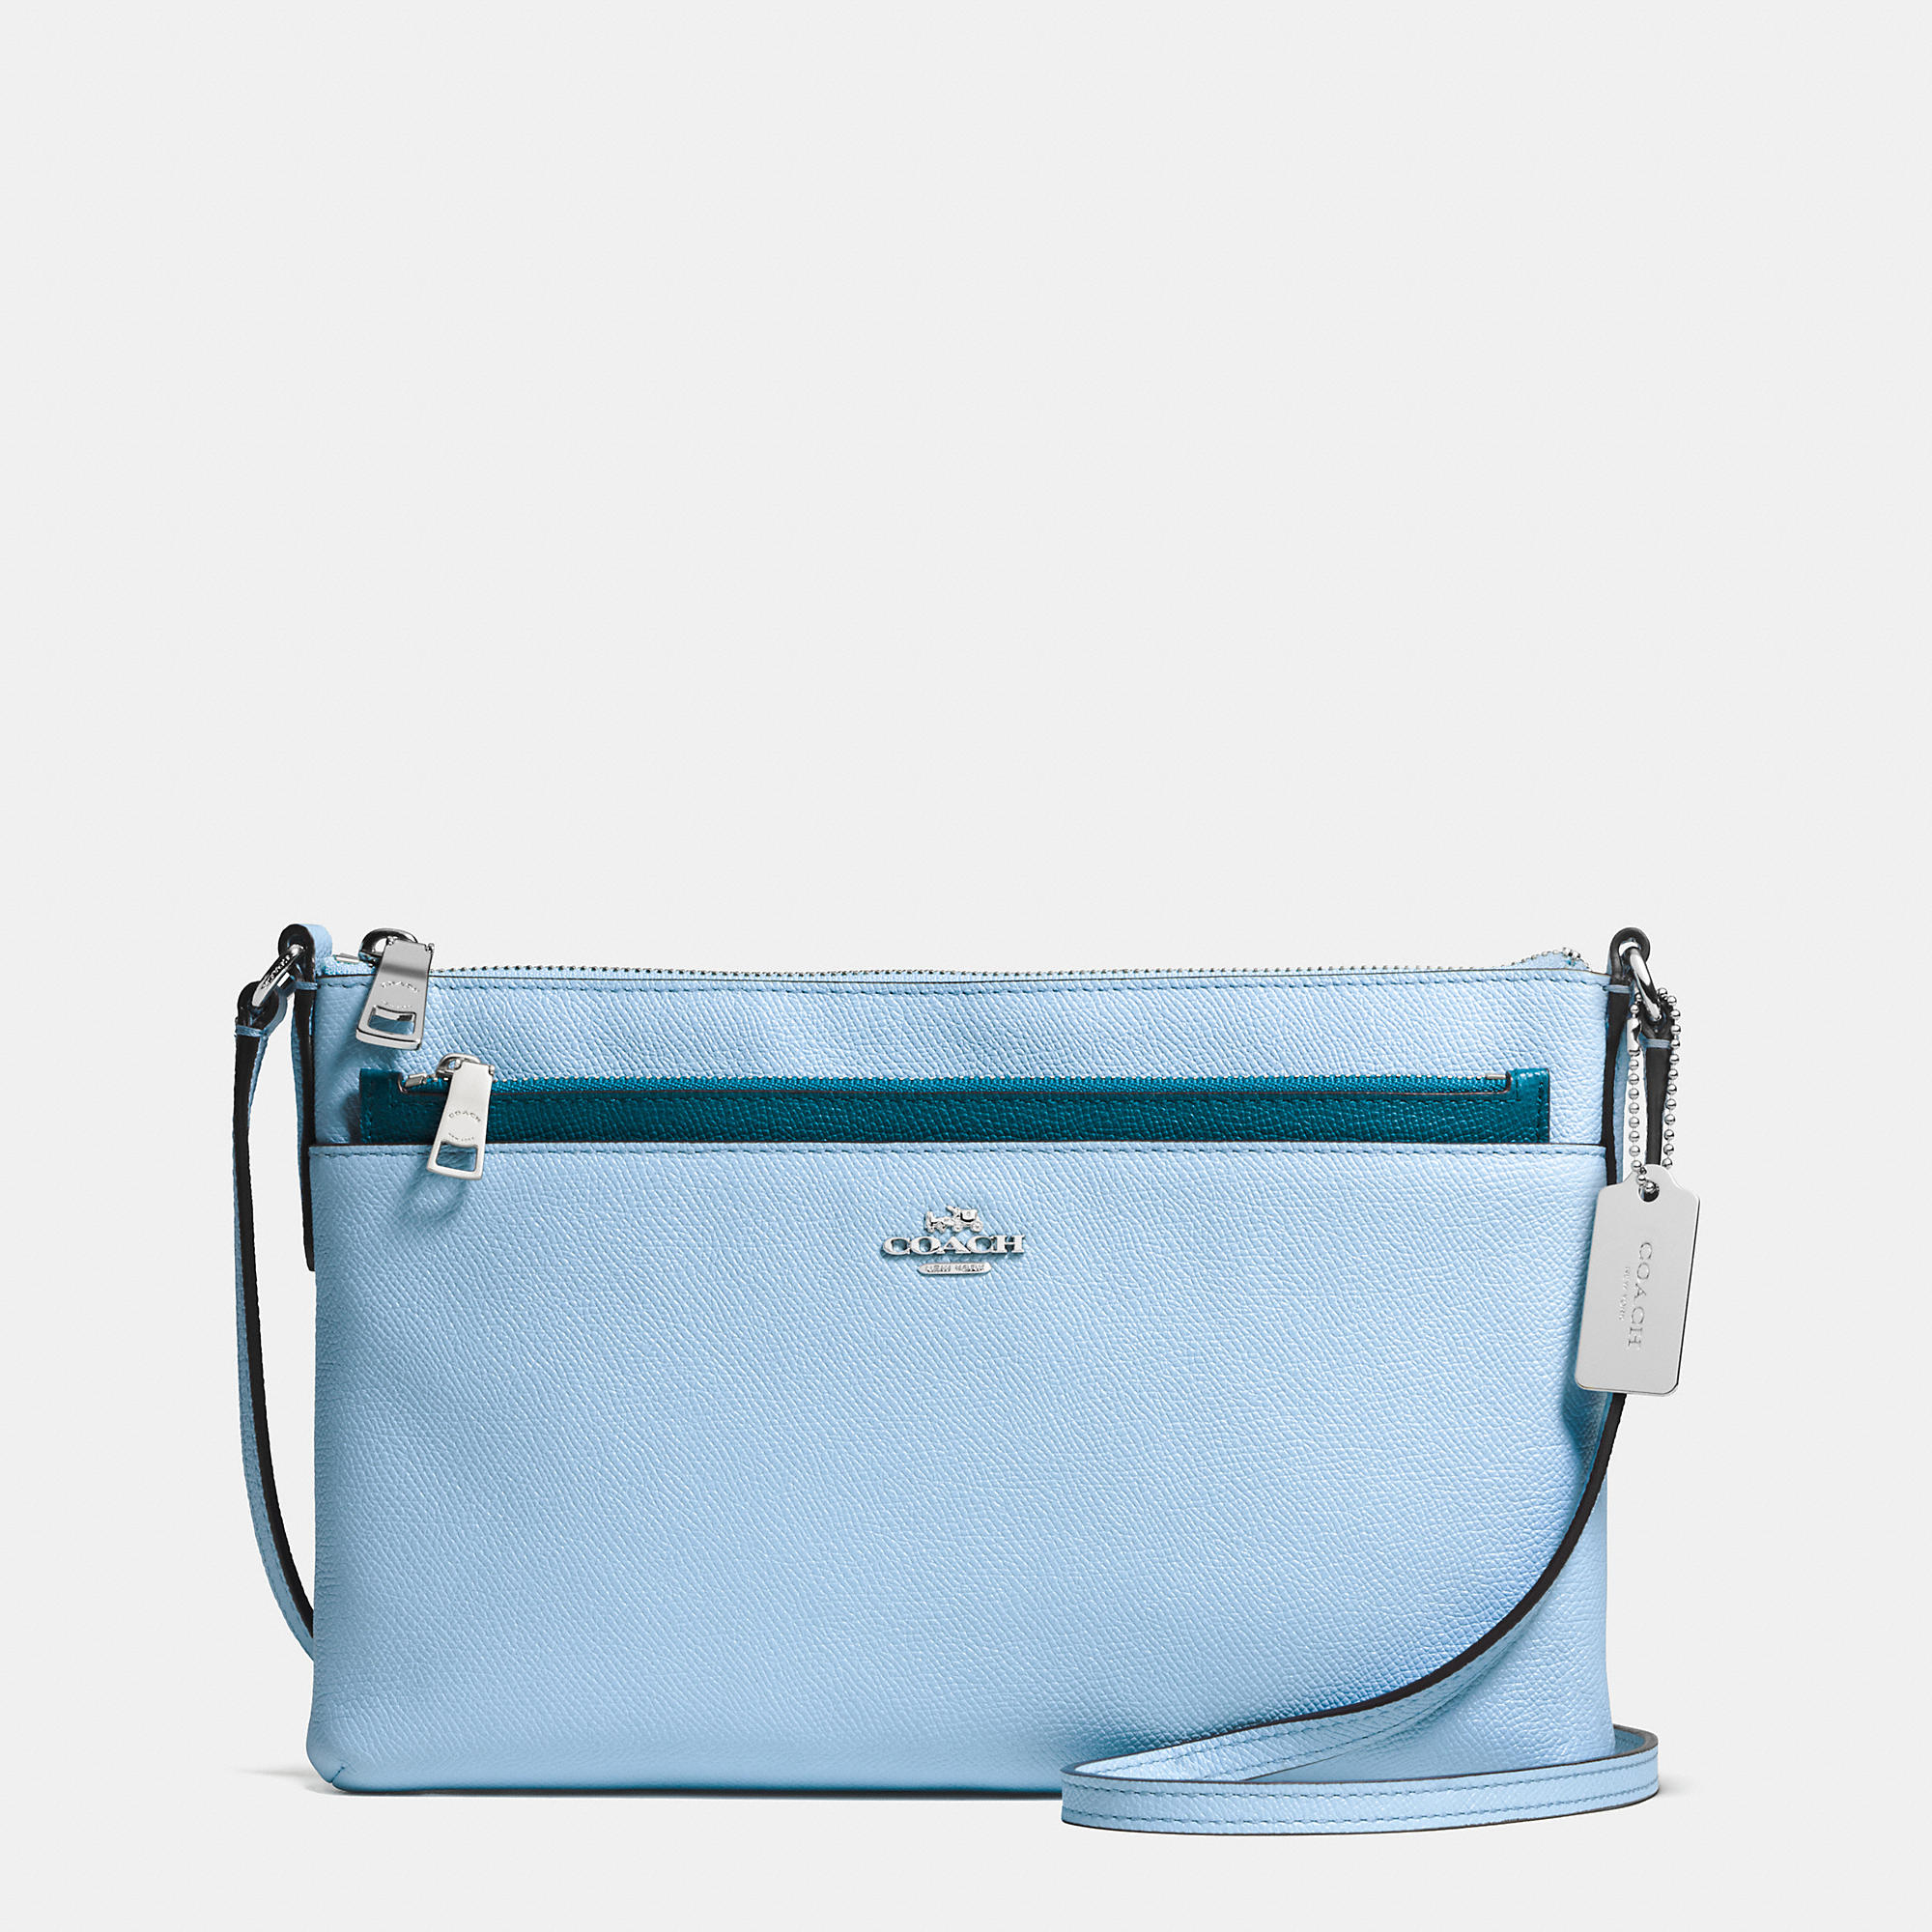 ... canada lyst coach crossbody with pop up pouch in crossgrain leather in  blue 11fb9 42944 c87a4ef2380c3